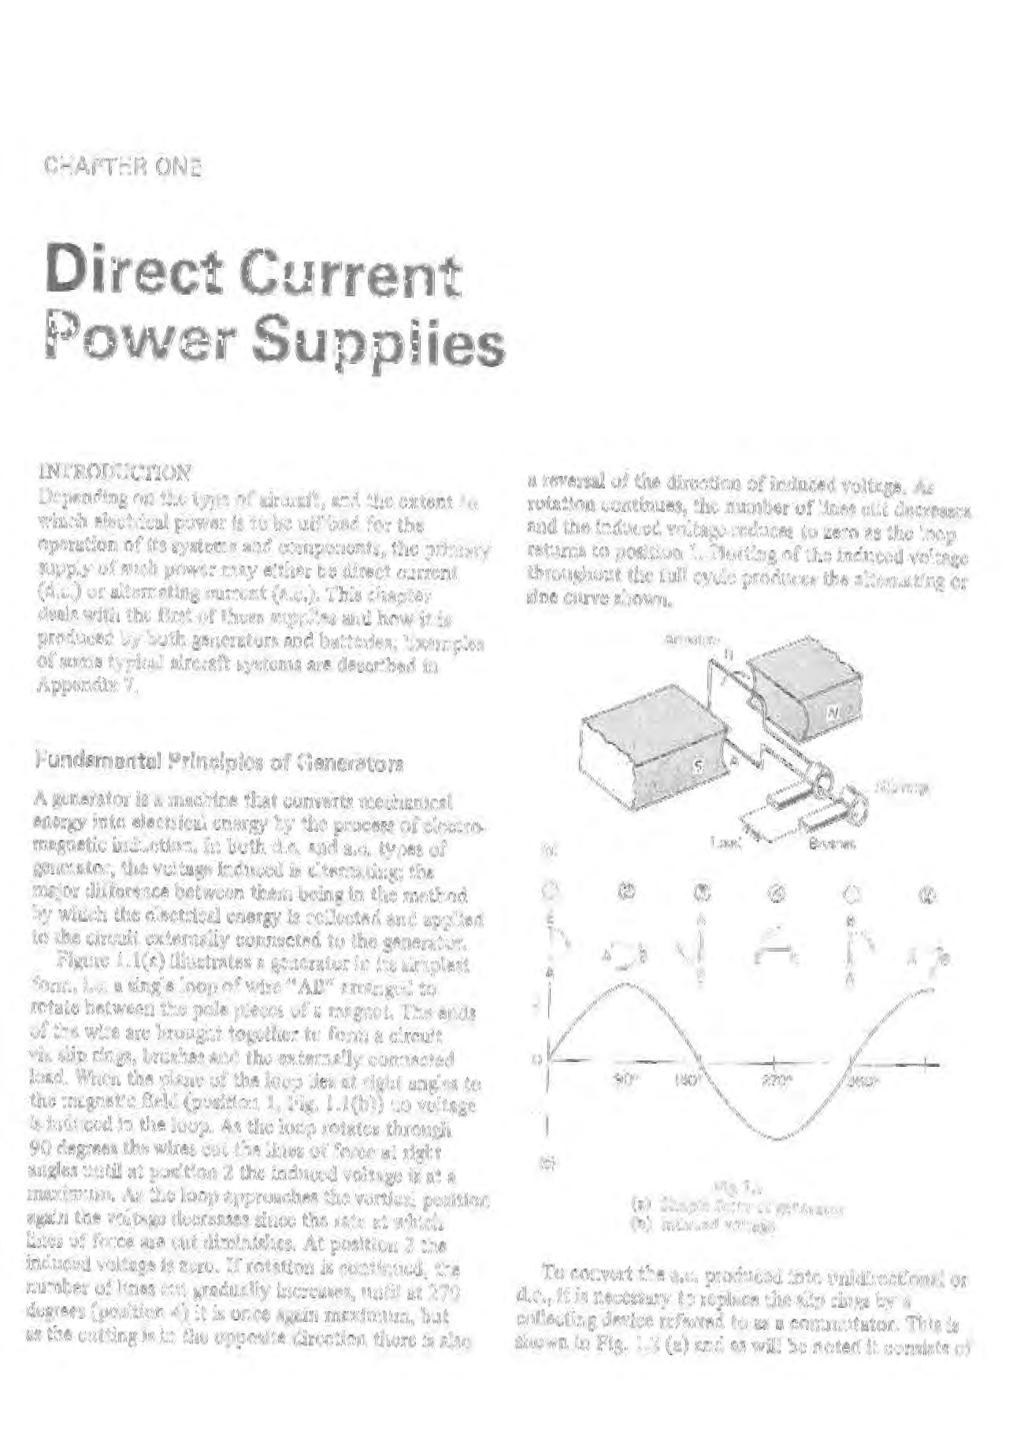 Aircraft Electrical Systems Pdf Depict The Power Source As A Battery But It Is Supply Chapter One Direct Current Supplies Ntroducton Depending On Type Of And